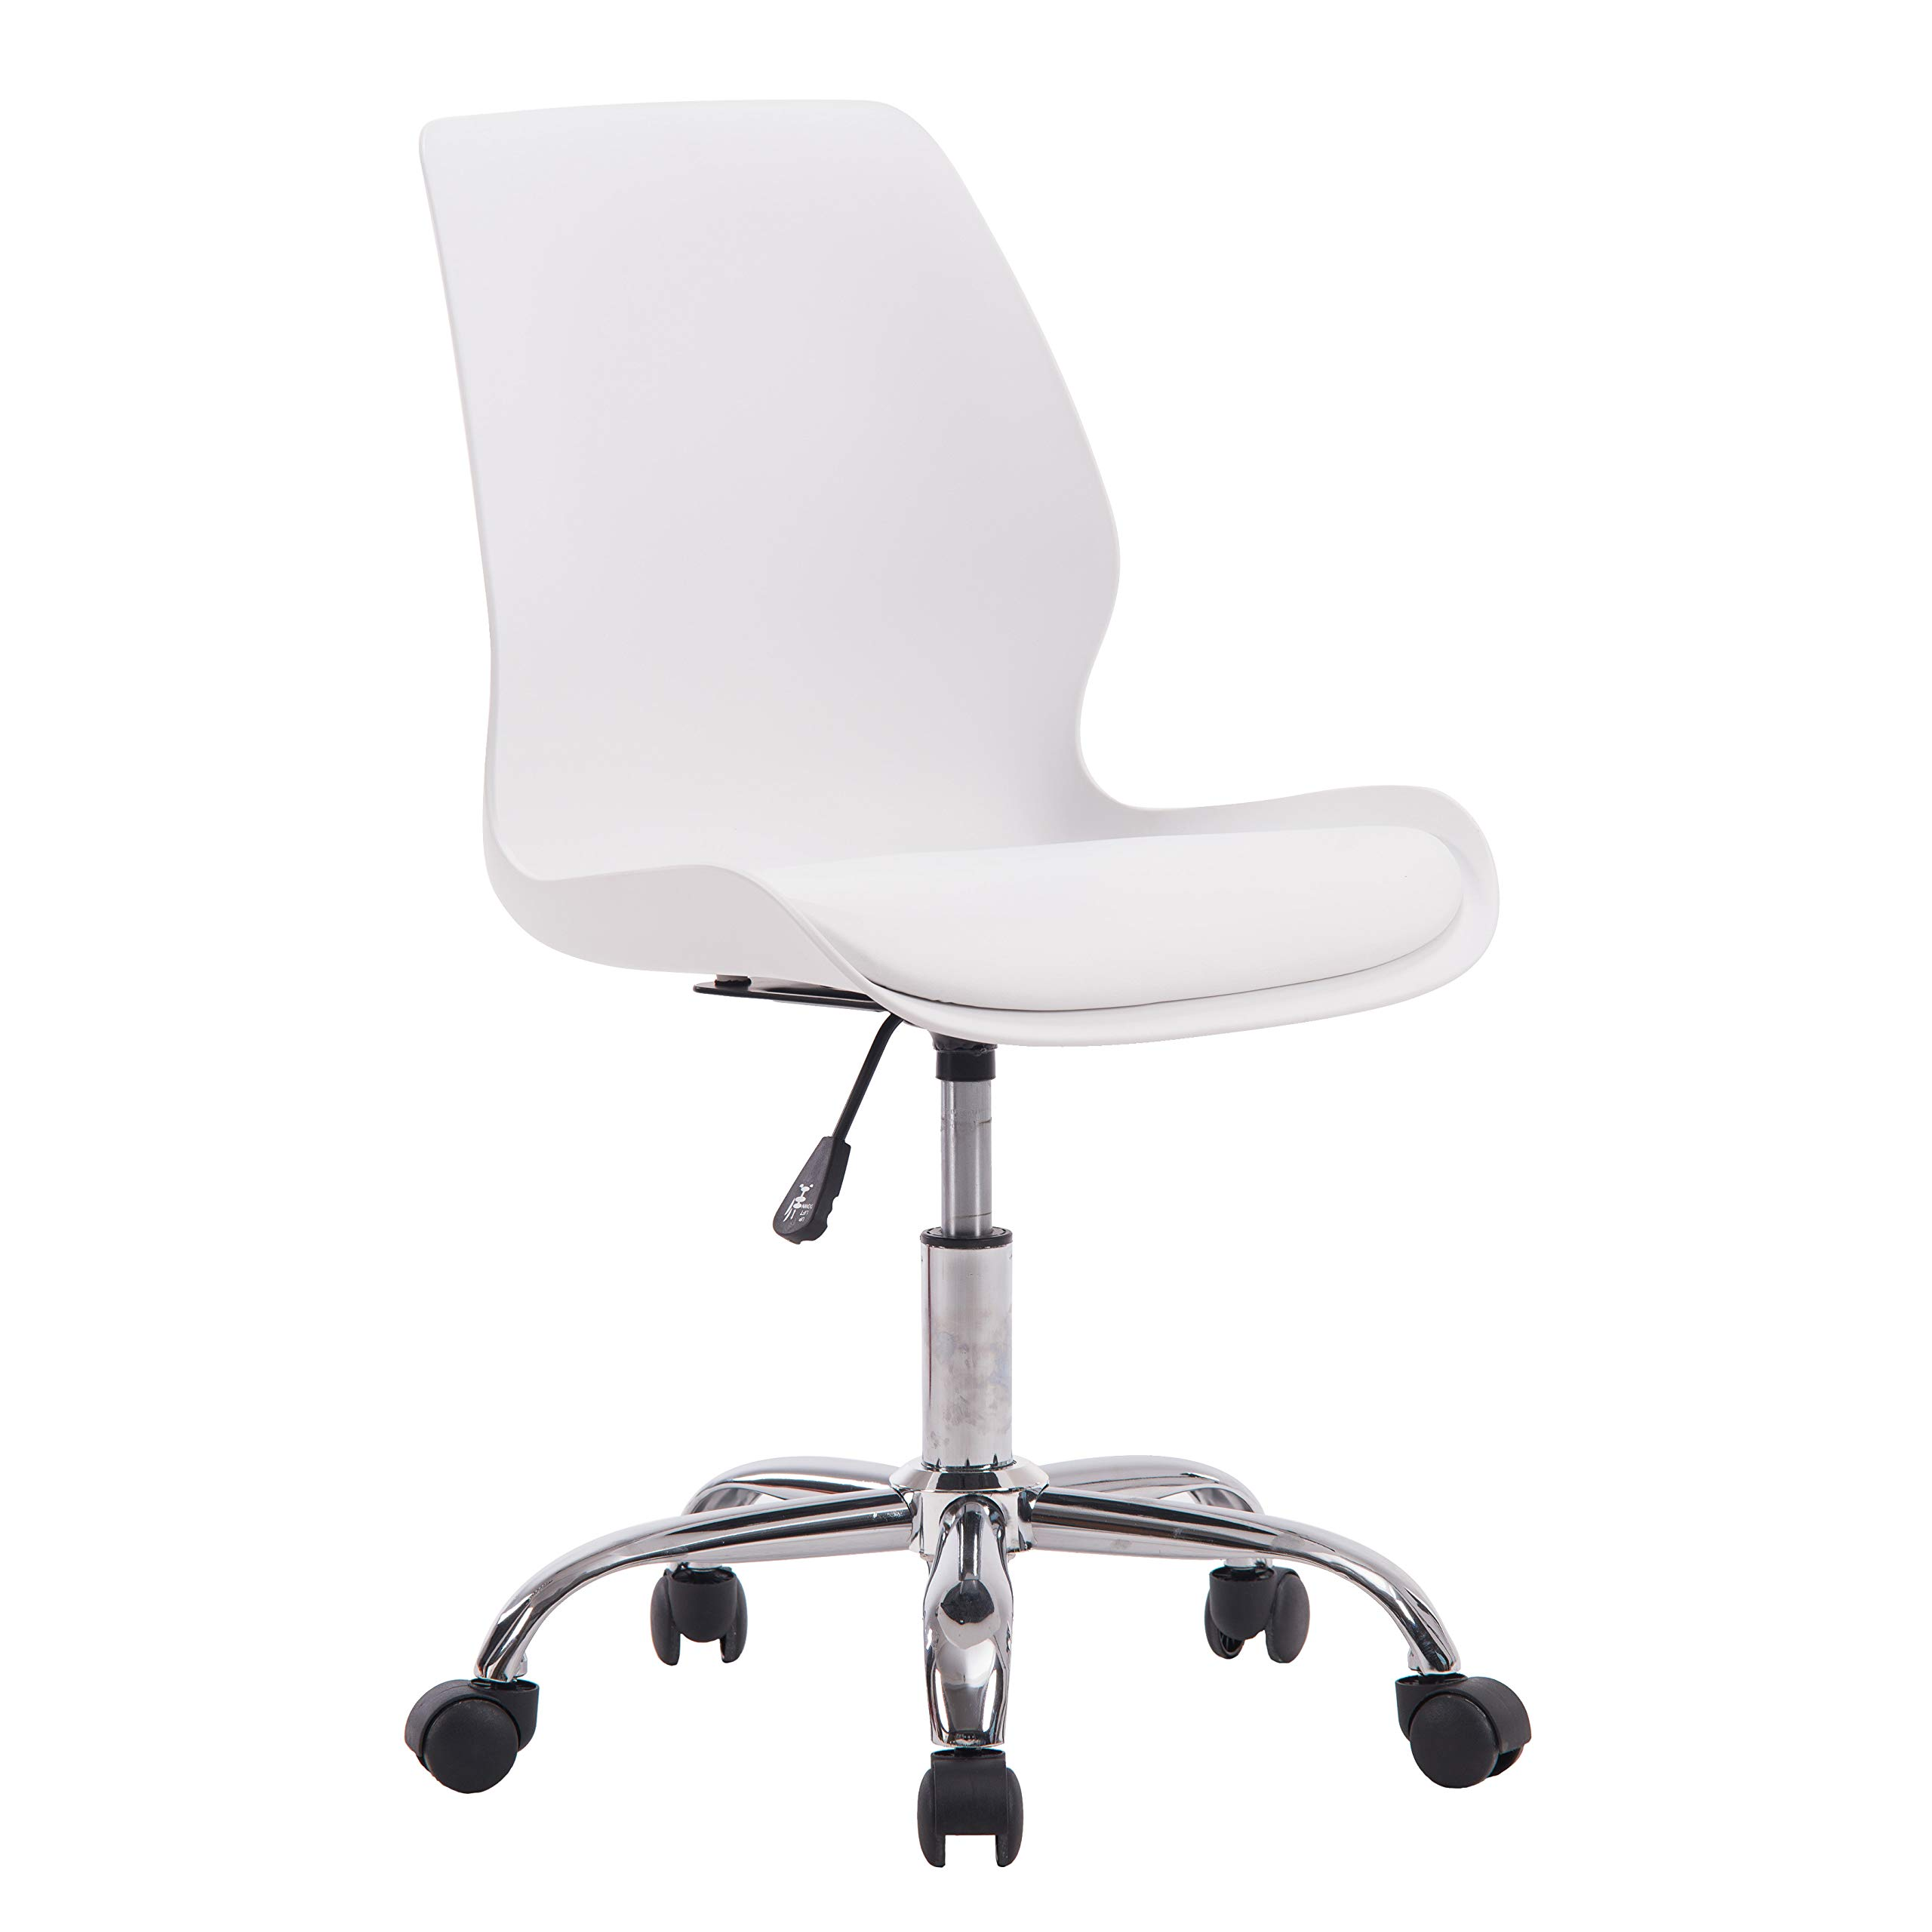 Porthos Home LVC006A WHT Adjustable Height Office Desk Chair with Wheels, Easy Assembly, White or Black, One Size